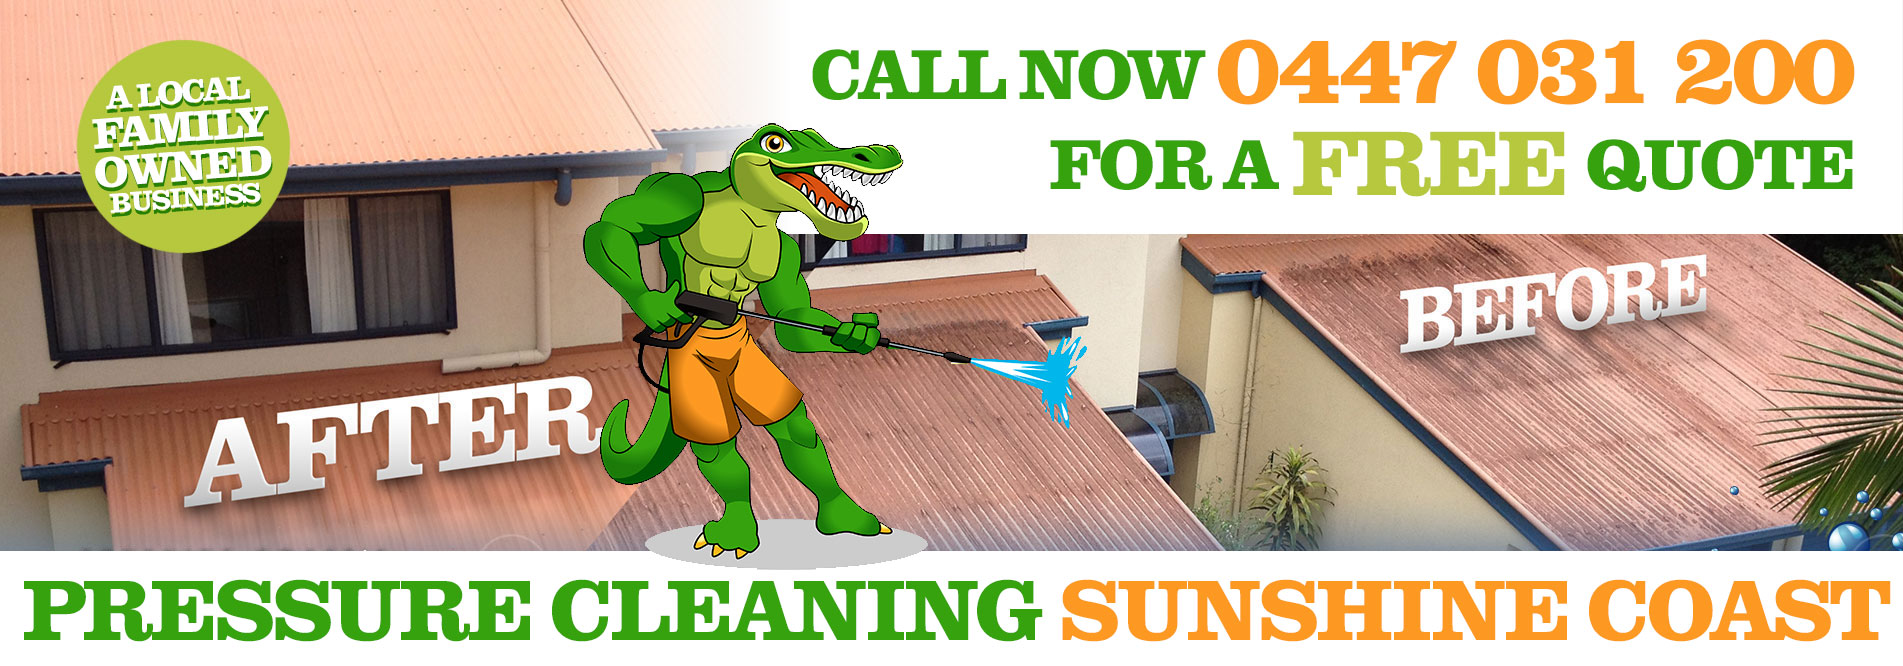 Pressure Cleaning Sunshine Coast Website Home Page Slide 03